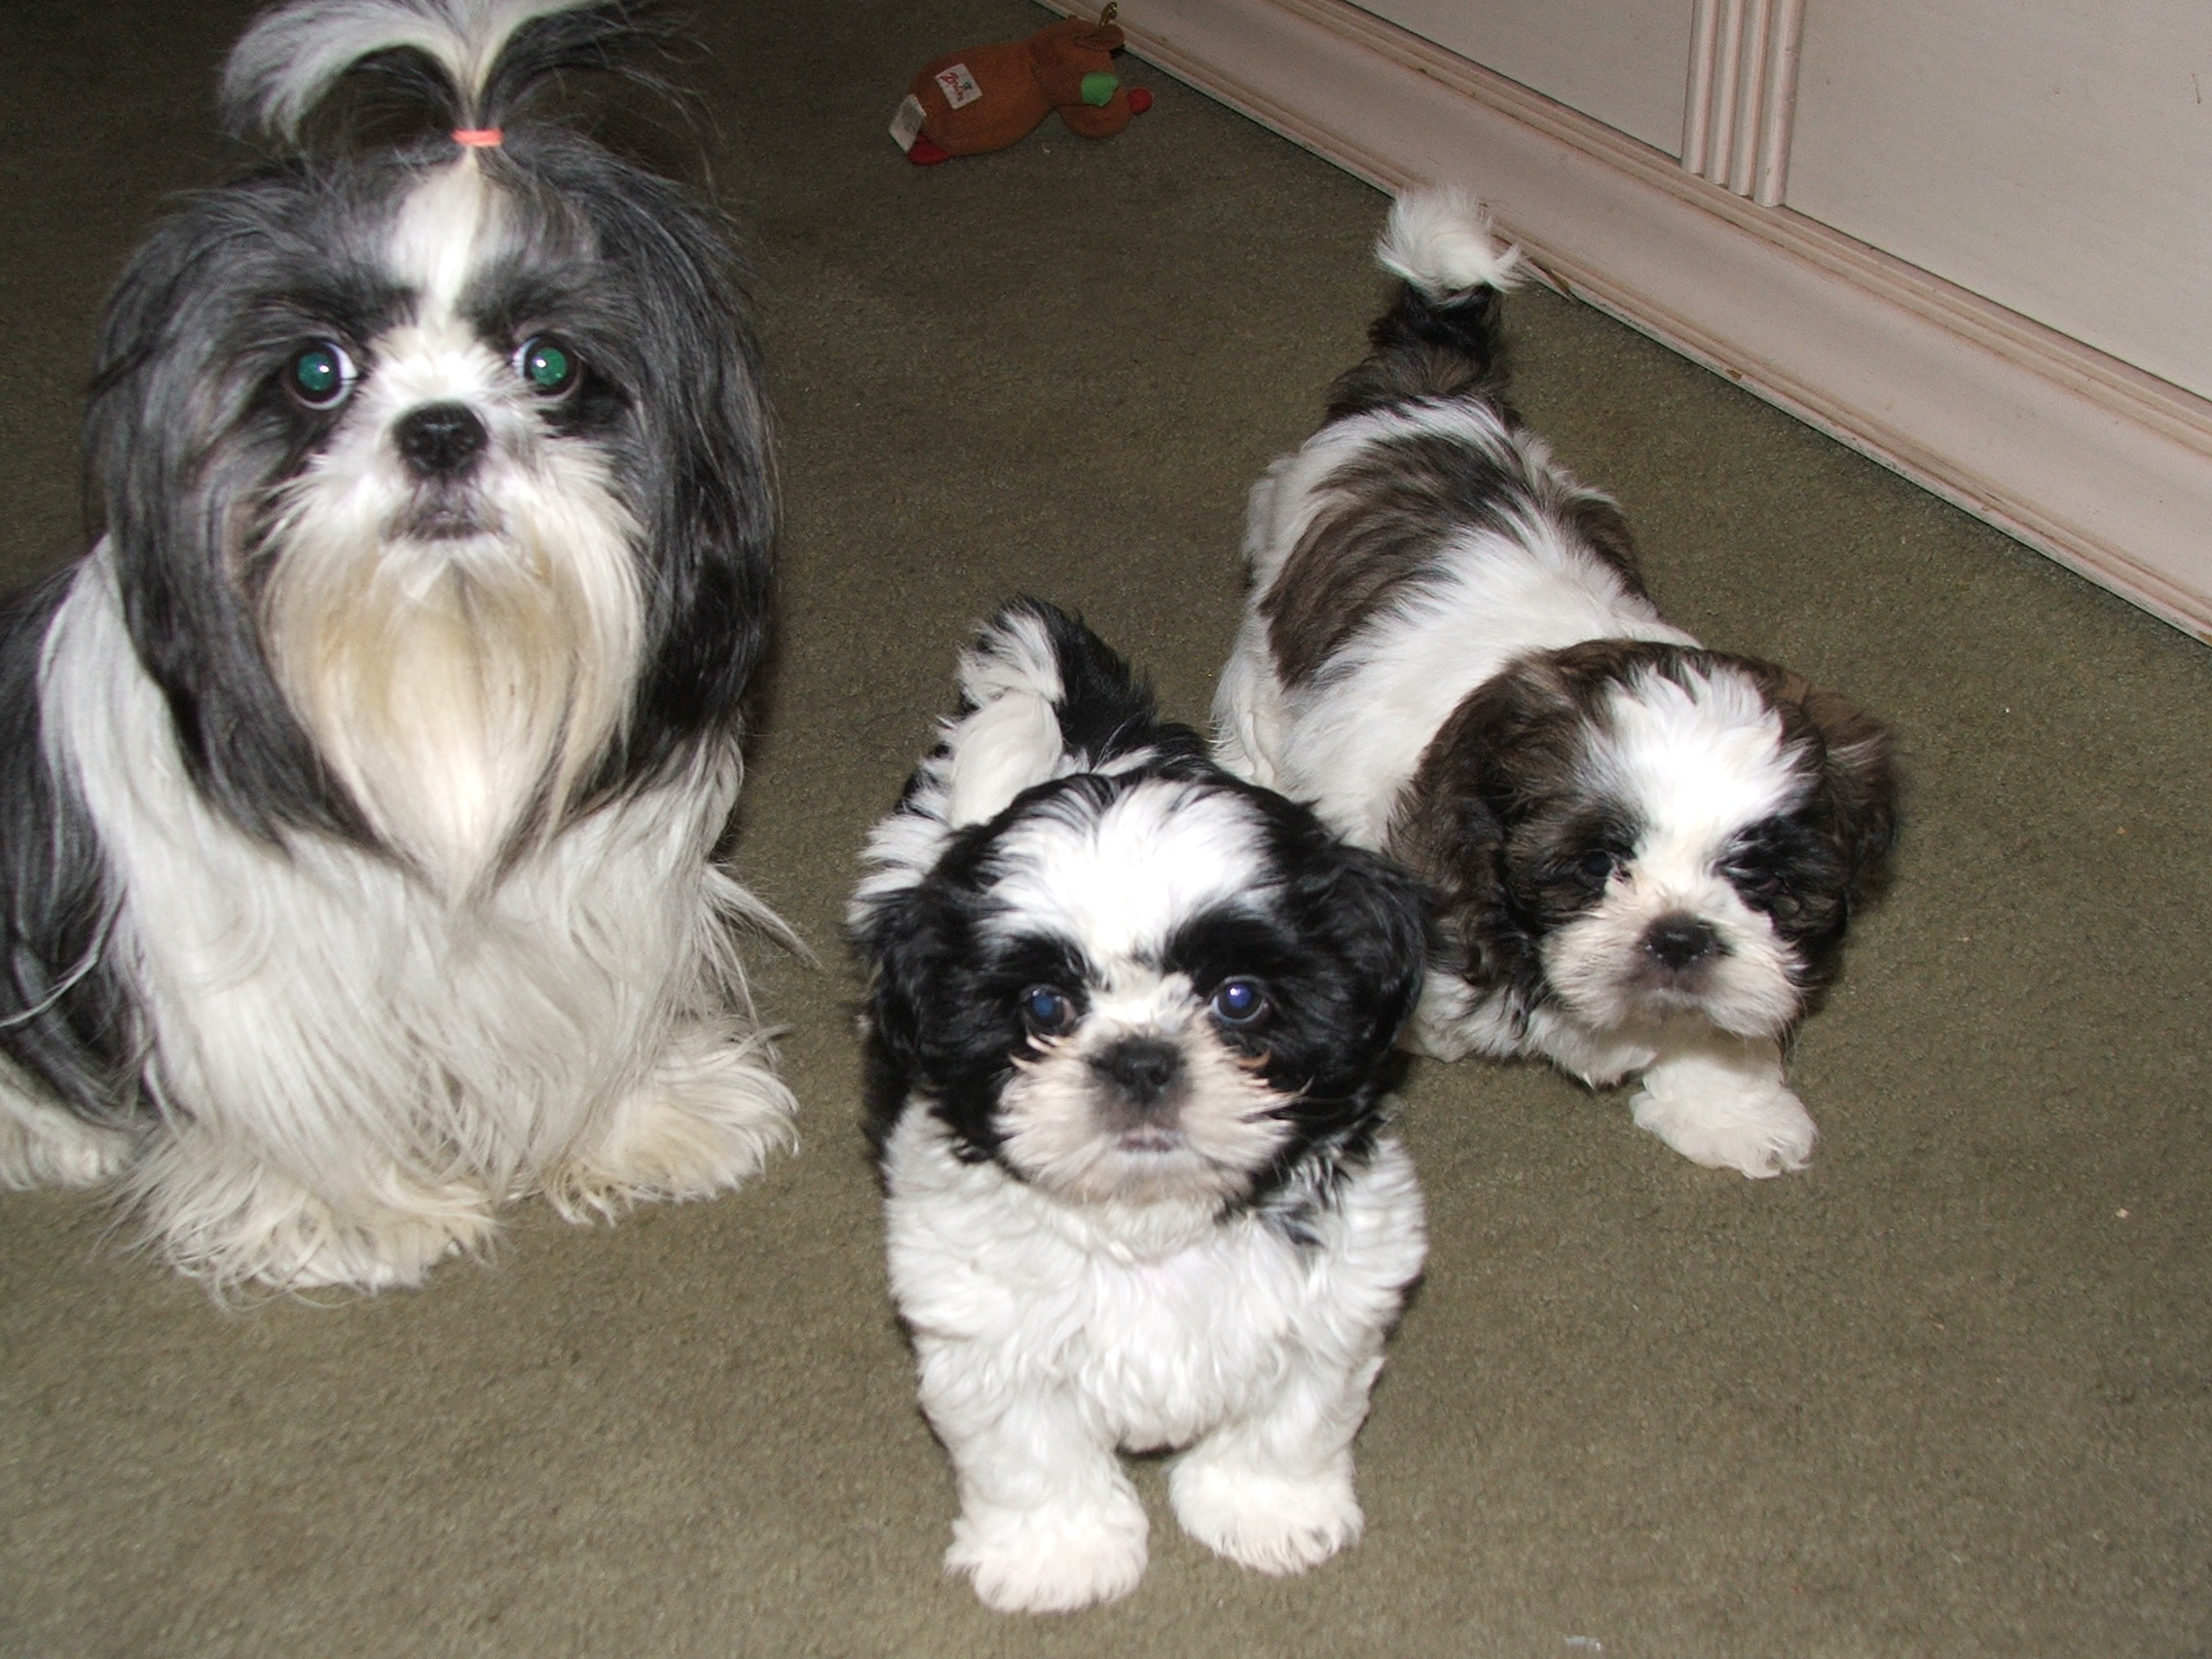 Mommy Shih Tzu with her two baby Shih Tzu